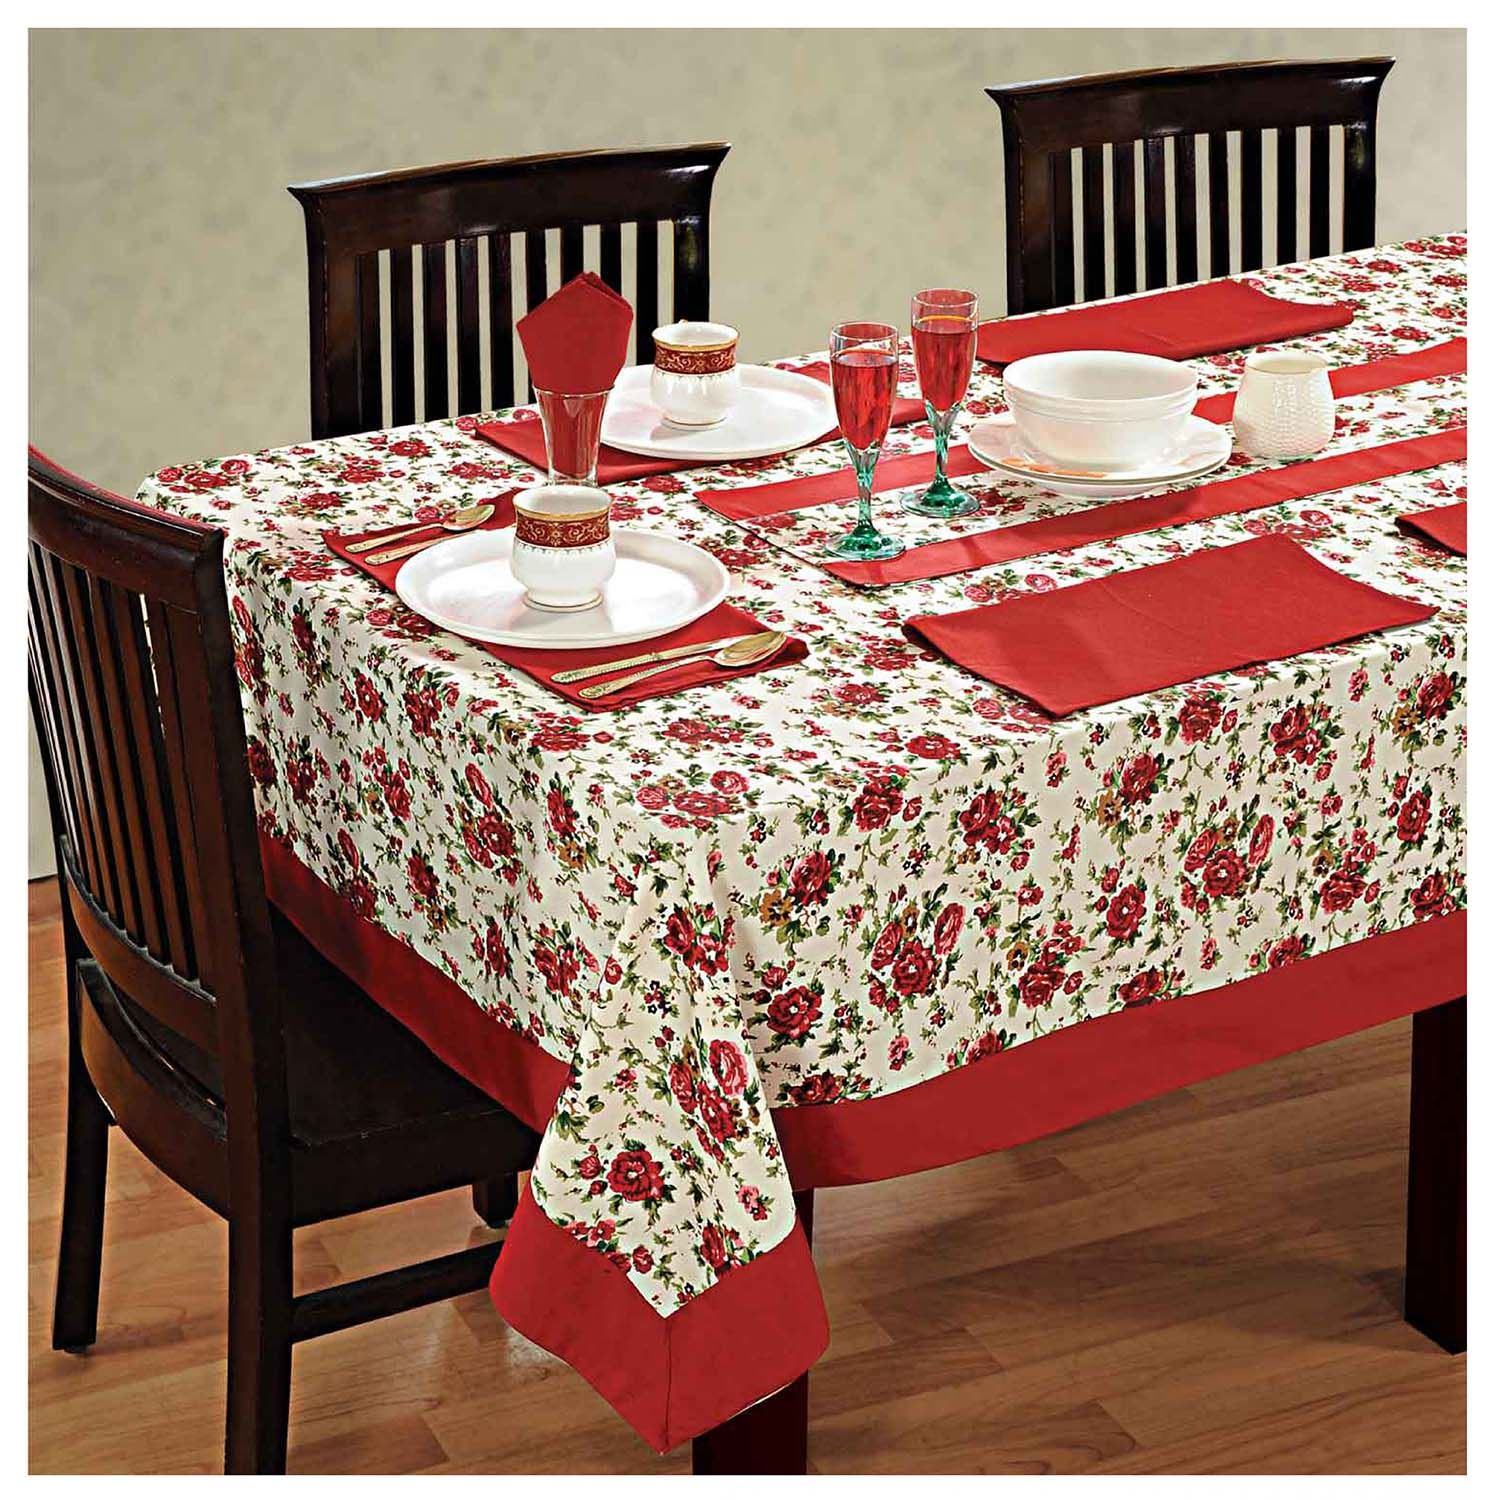 6 Seater Dinner Party Table Linen Set kitchen Dining